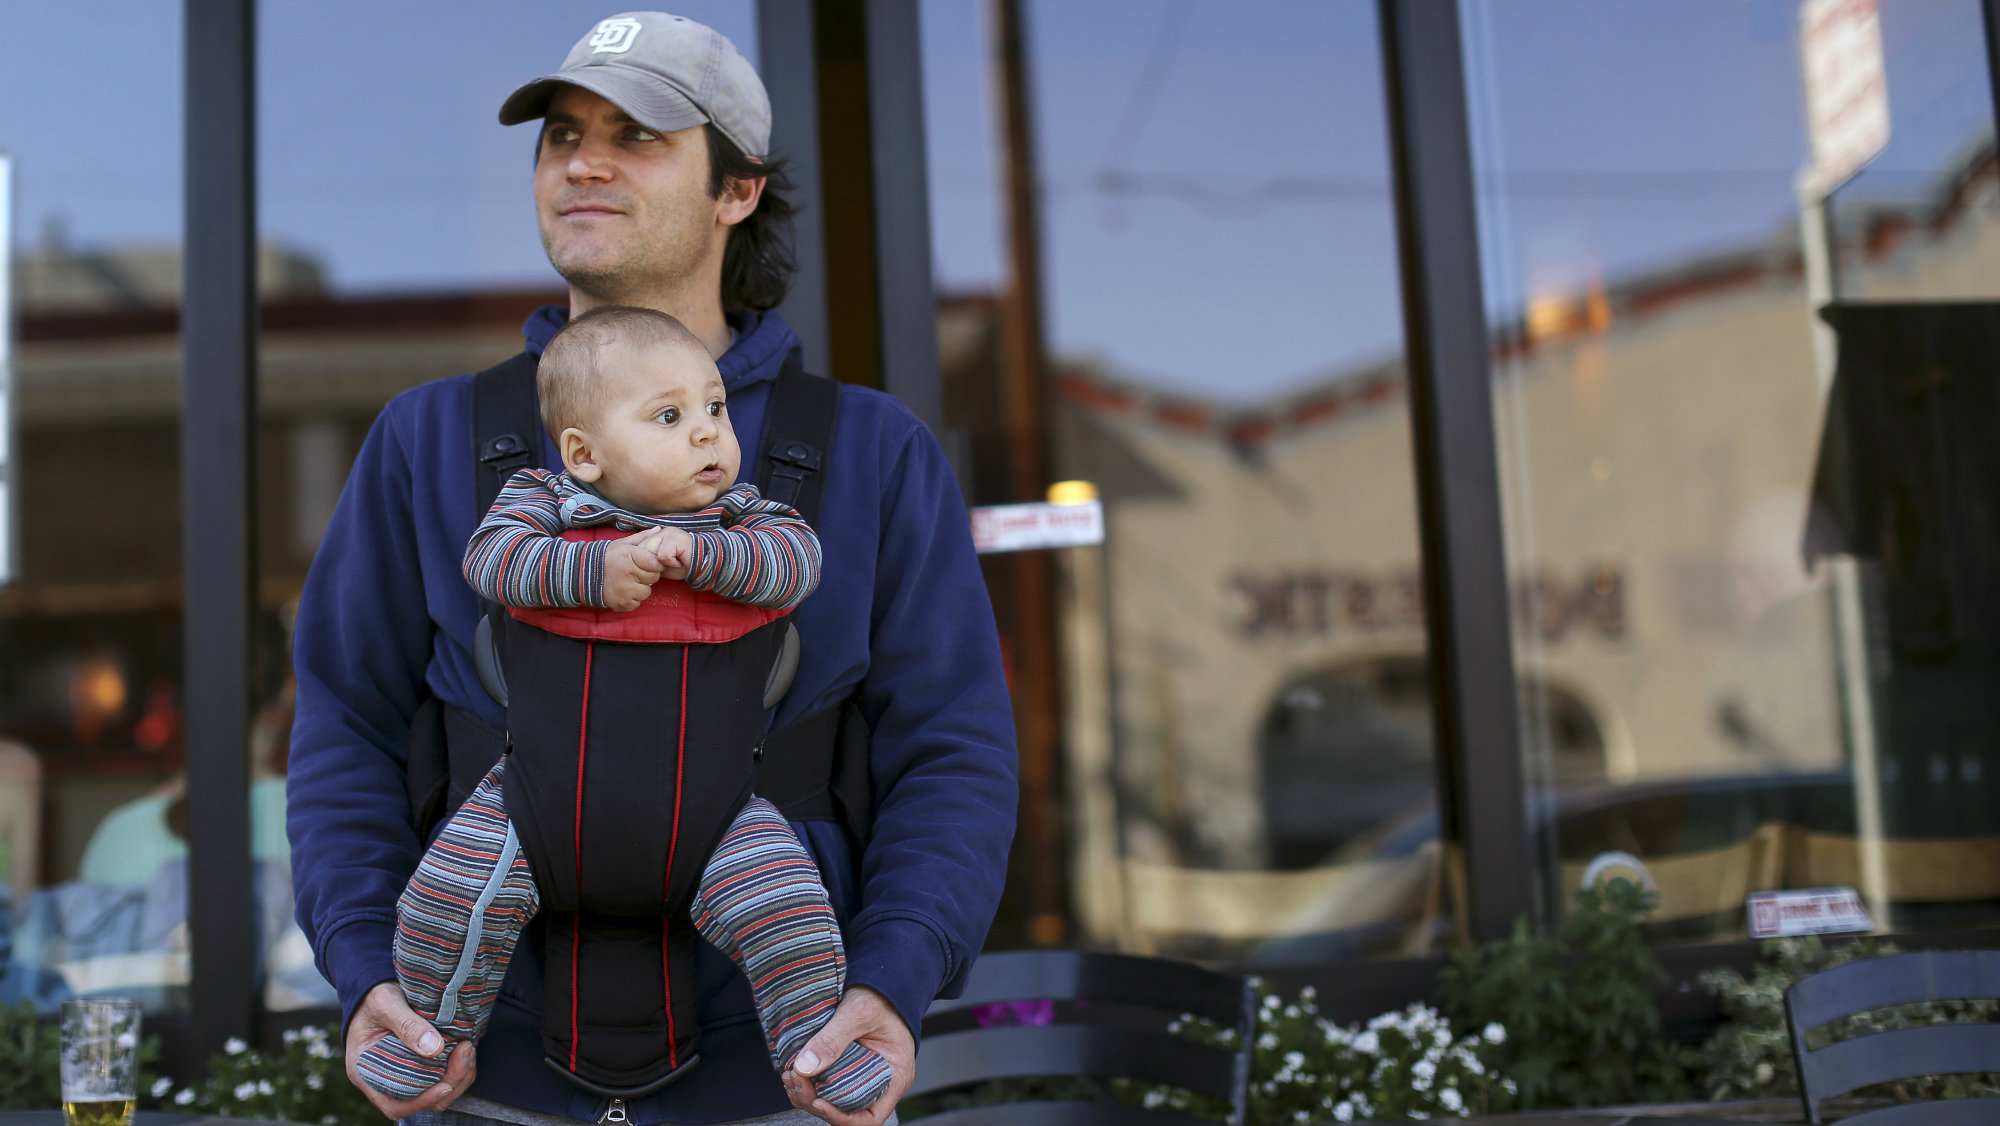 Steve Caniglia holds his six-month-old son, Boden, in San Francisco